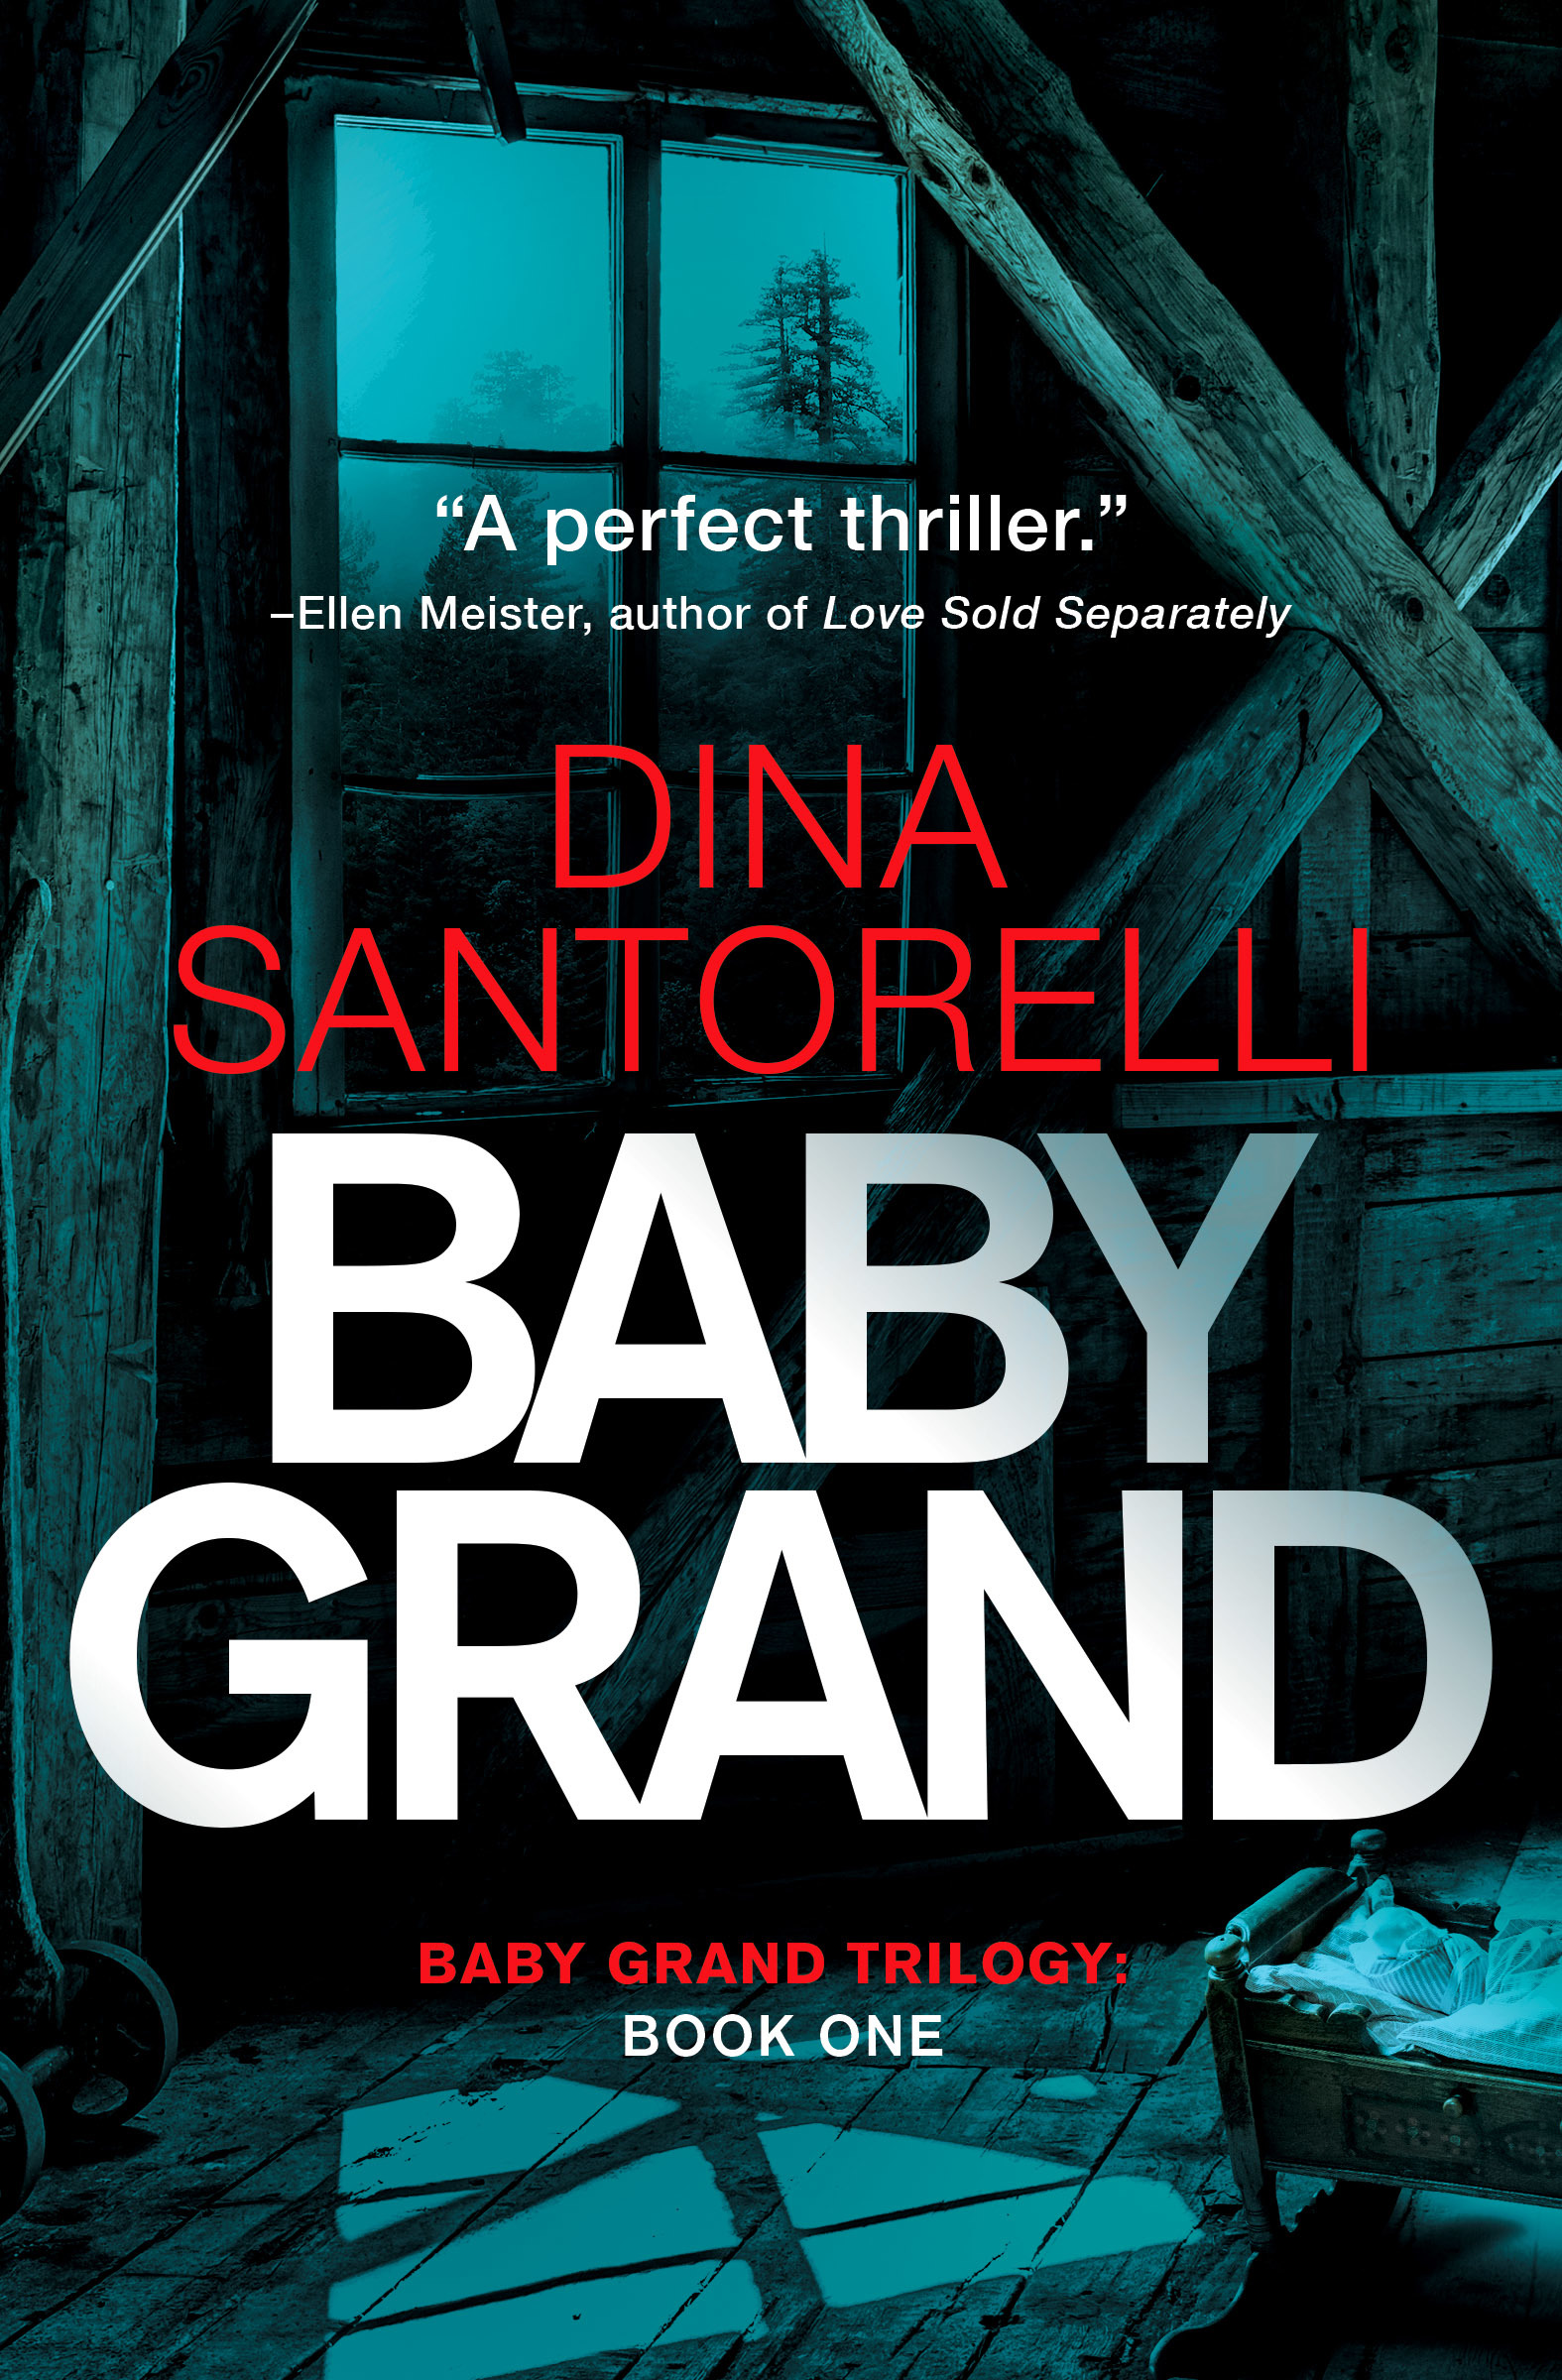 Baby Grand (Baby Grand Trilogy, Book 1)